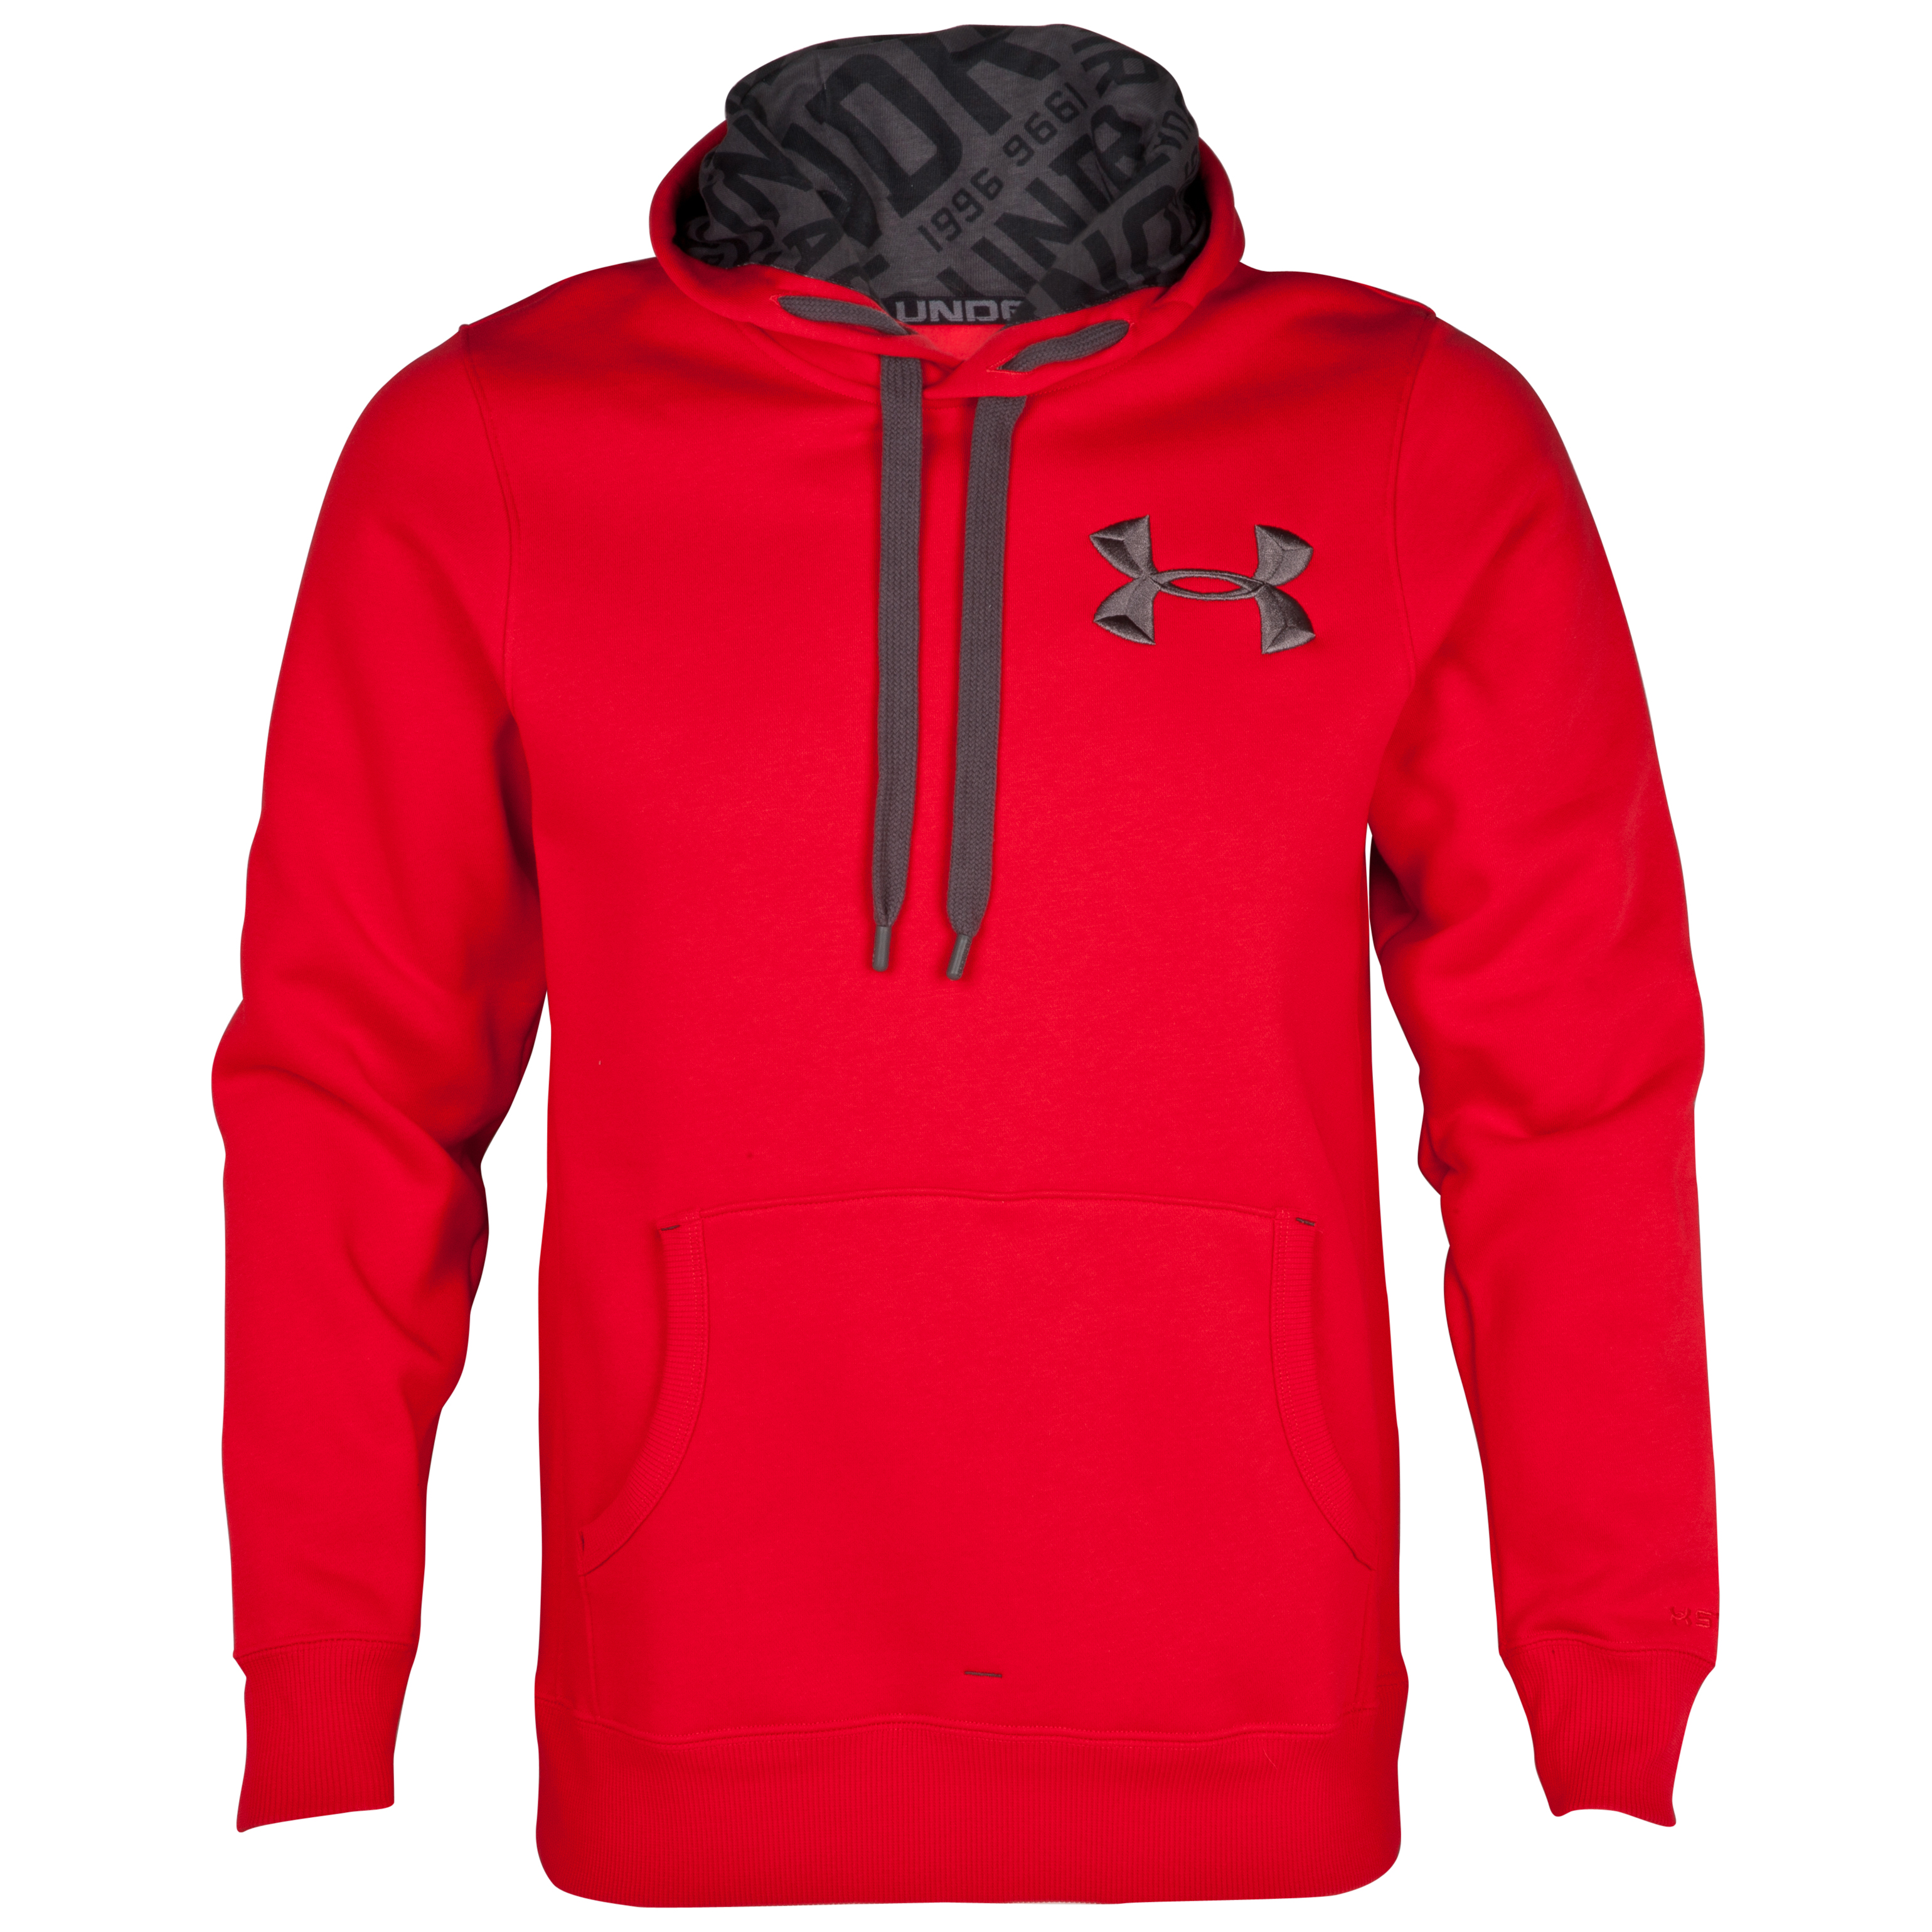 Under Armour Charged Cotton Storm Fleece Hoody - Red/Charcoal